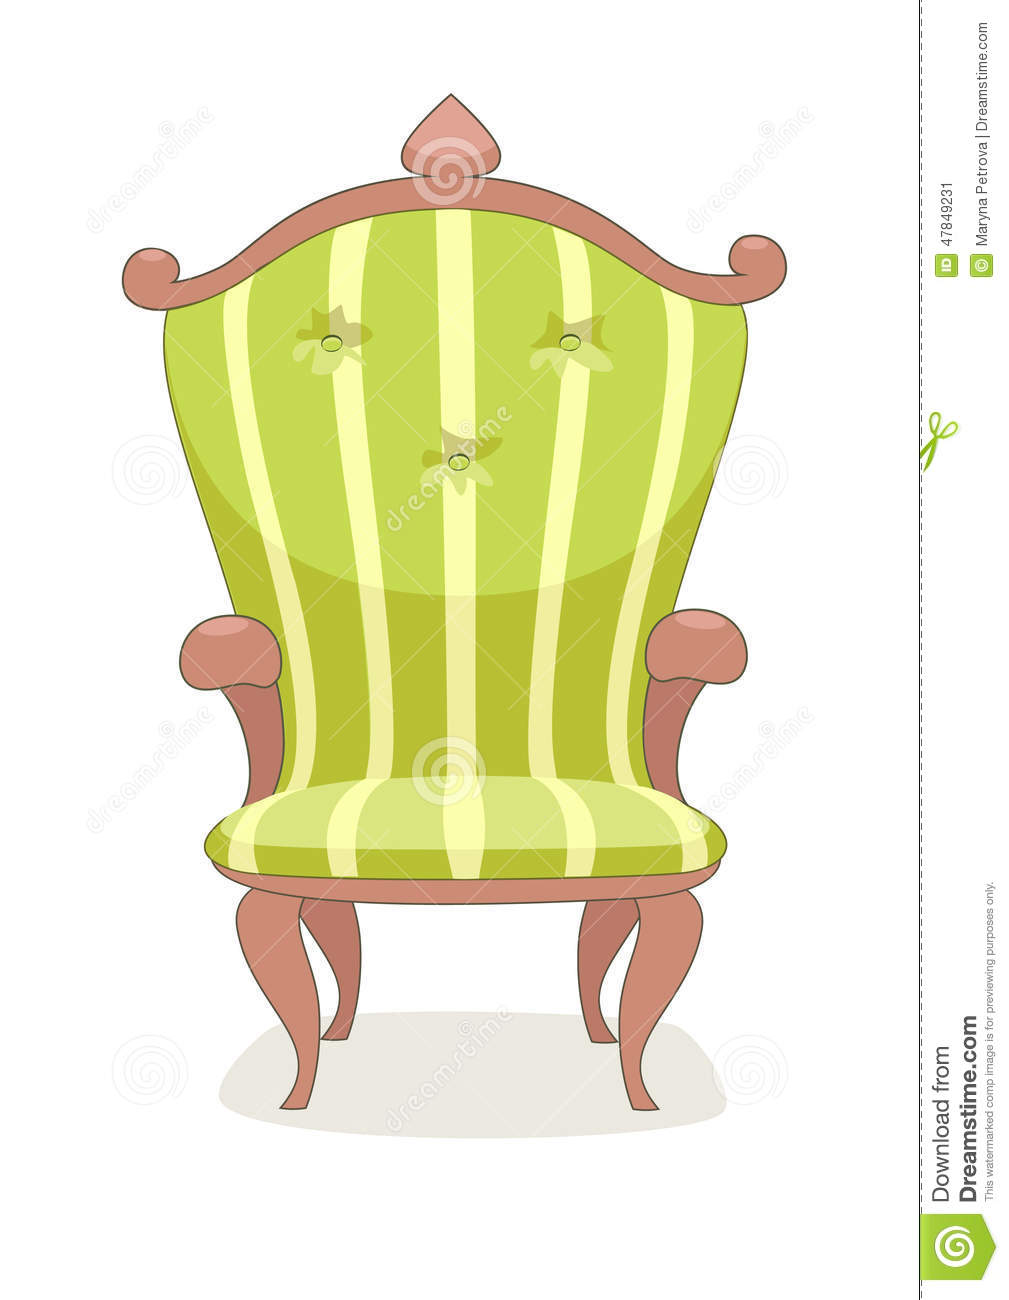 classic wooden yellow chair stock vector image 47849231 classic wooden chair designs classic wooden high chairs for babies